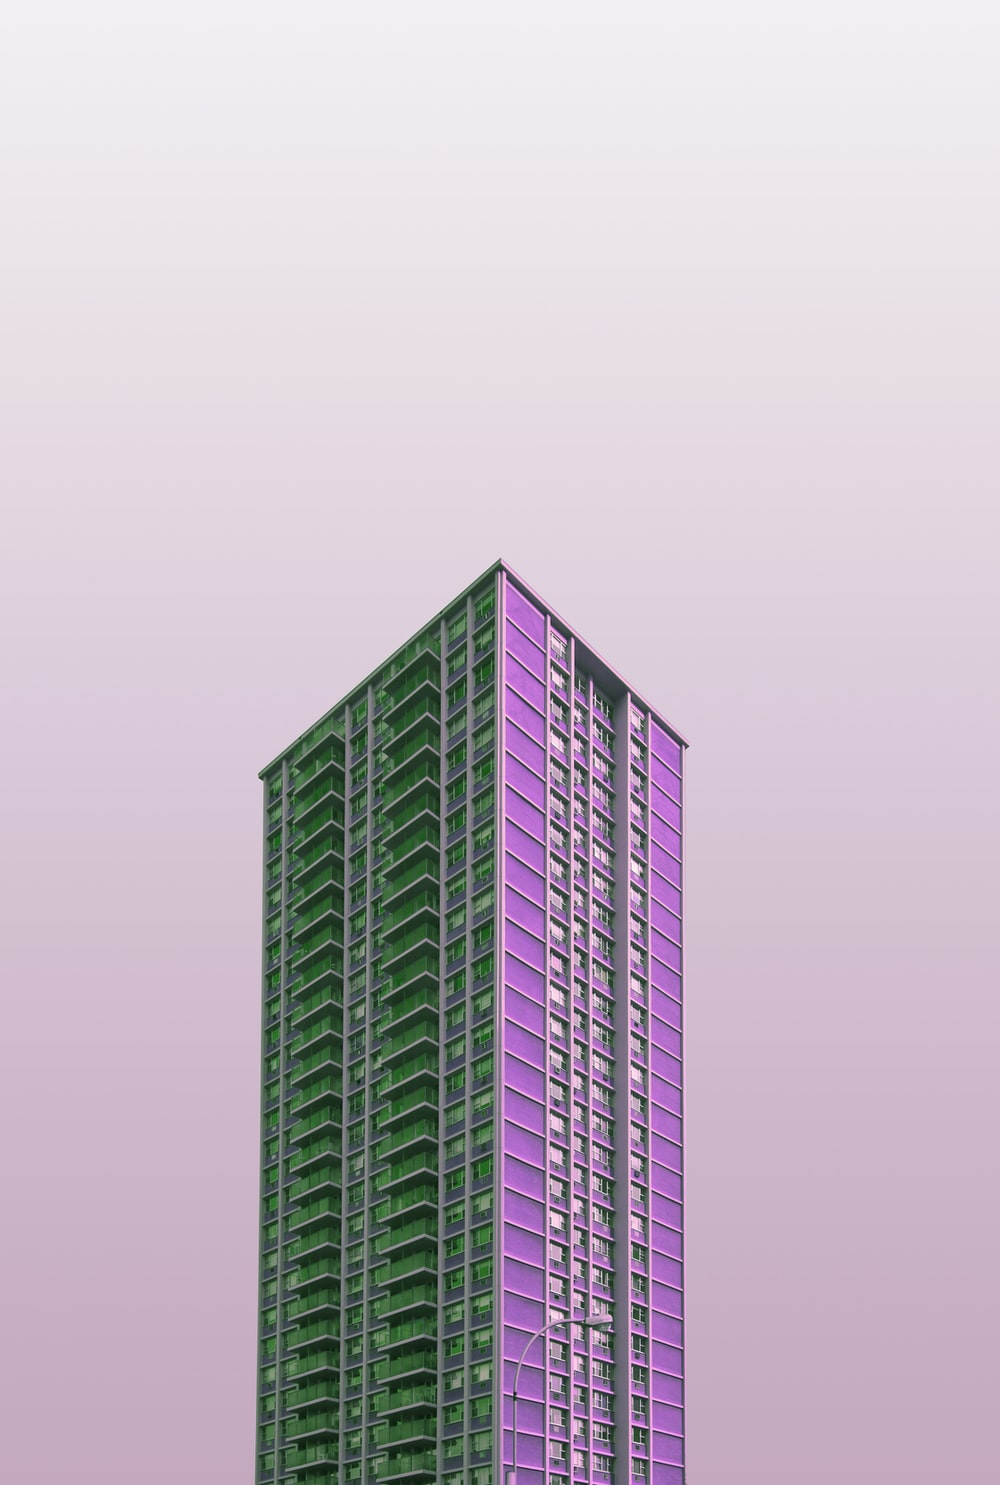 green and white high rise building